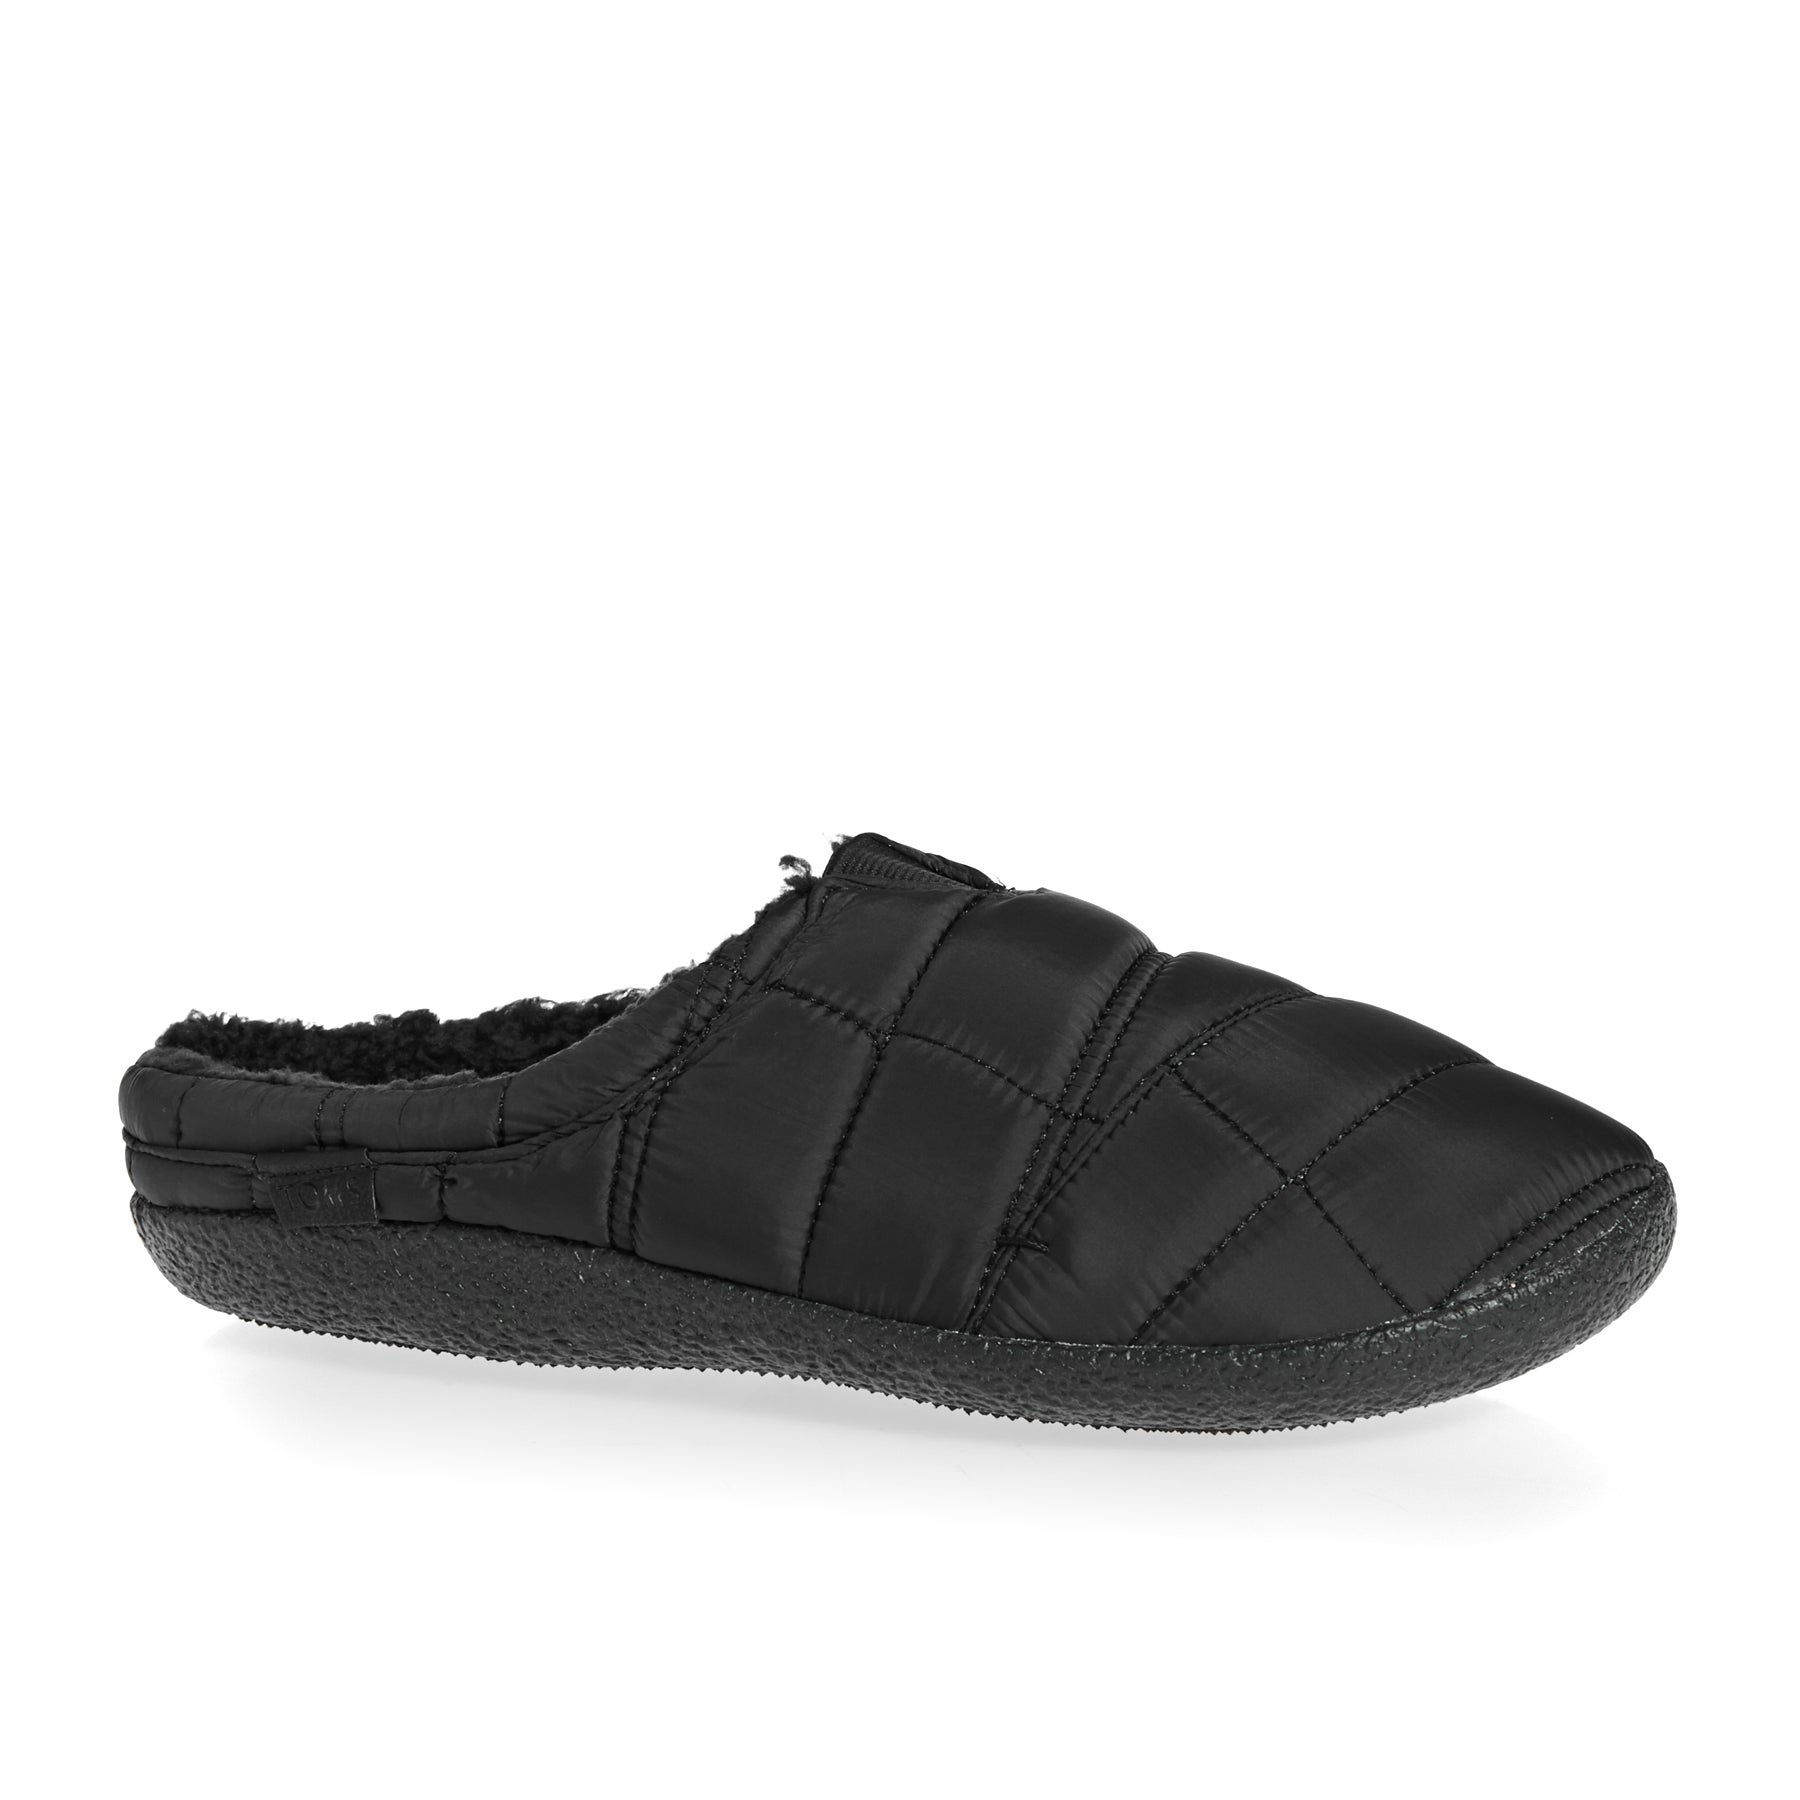 Toms Berkeley Quilted Slippers - Black Quilted